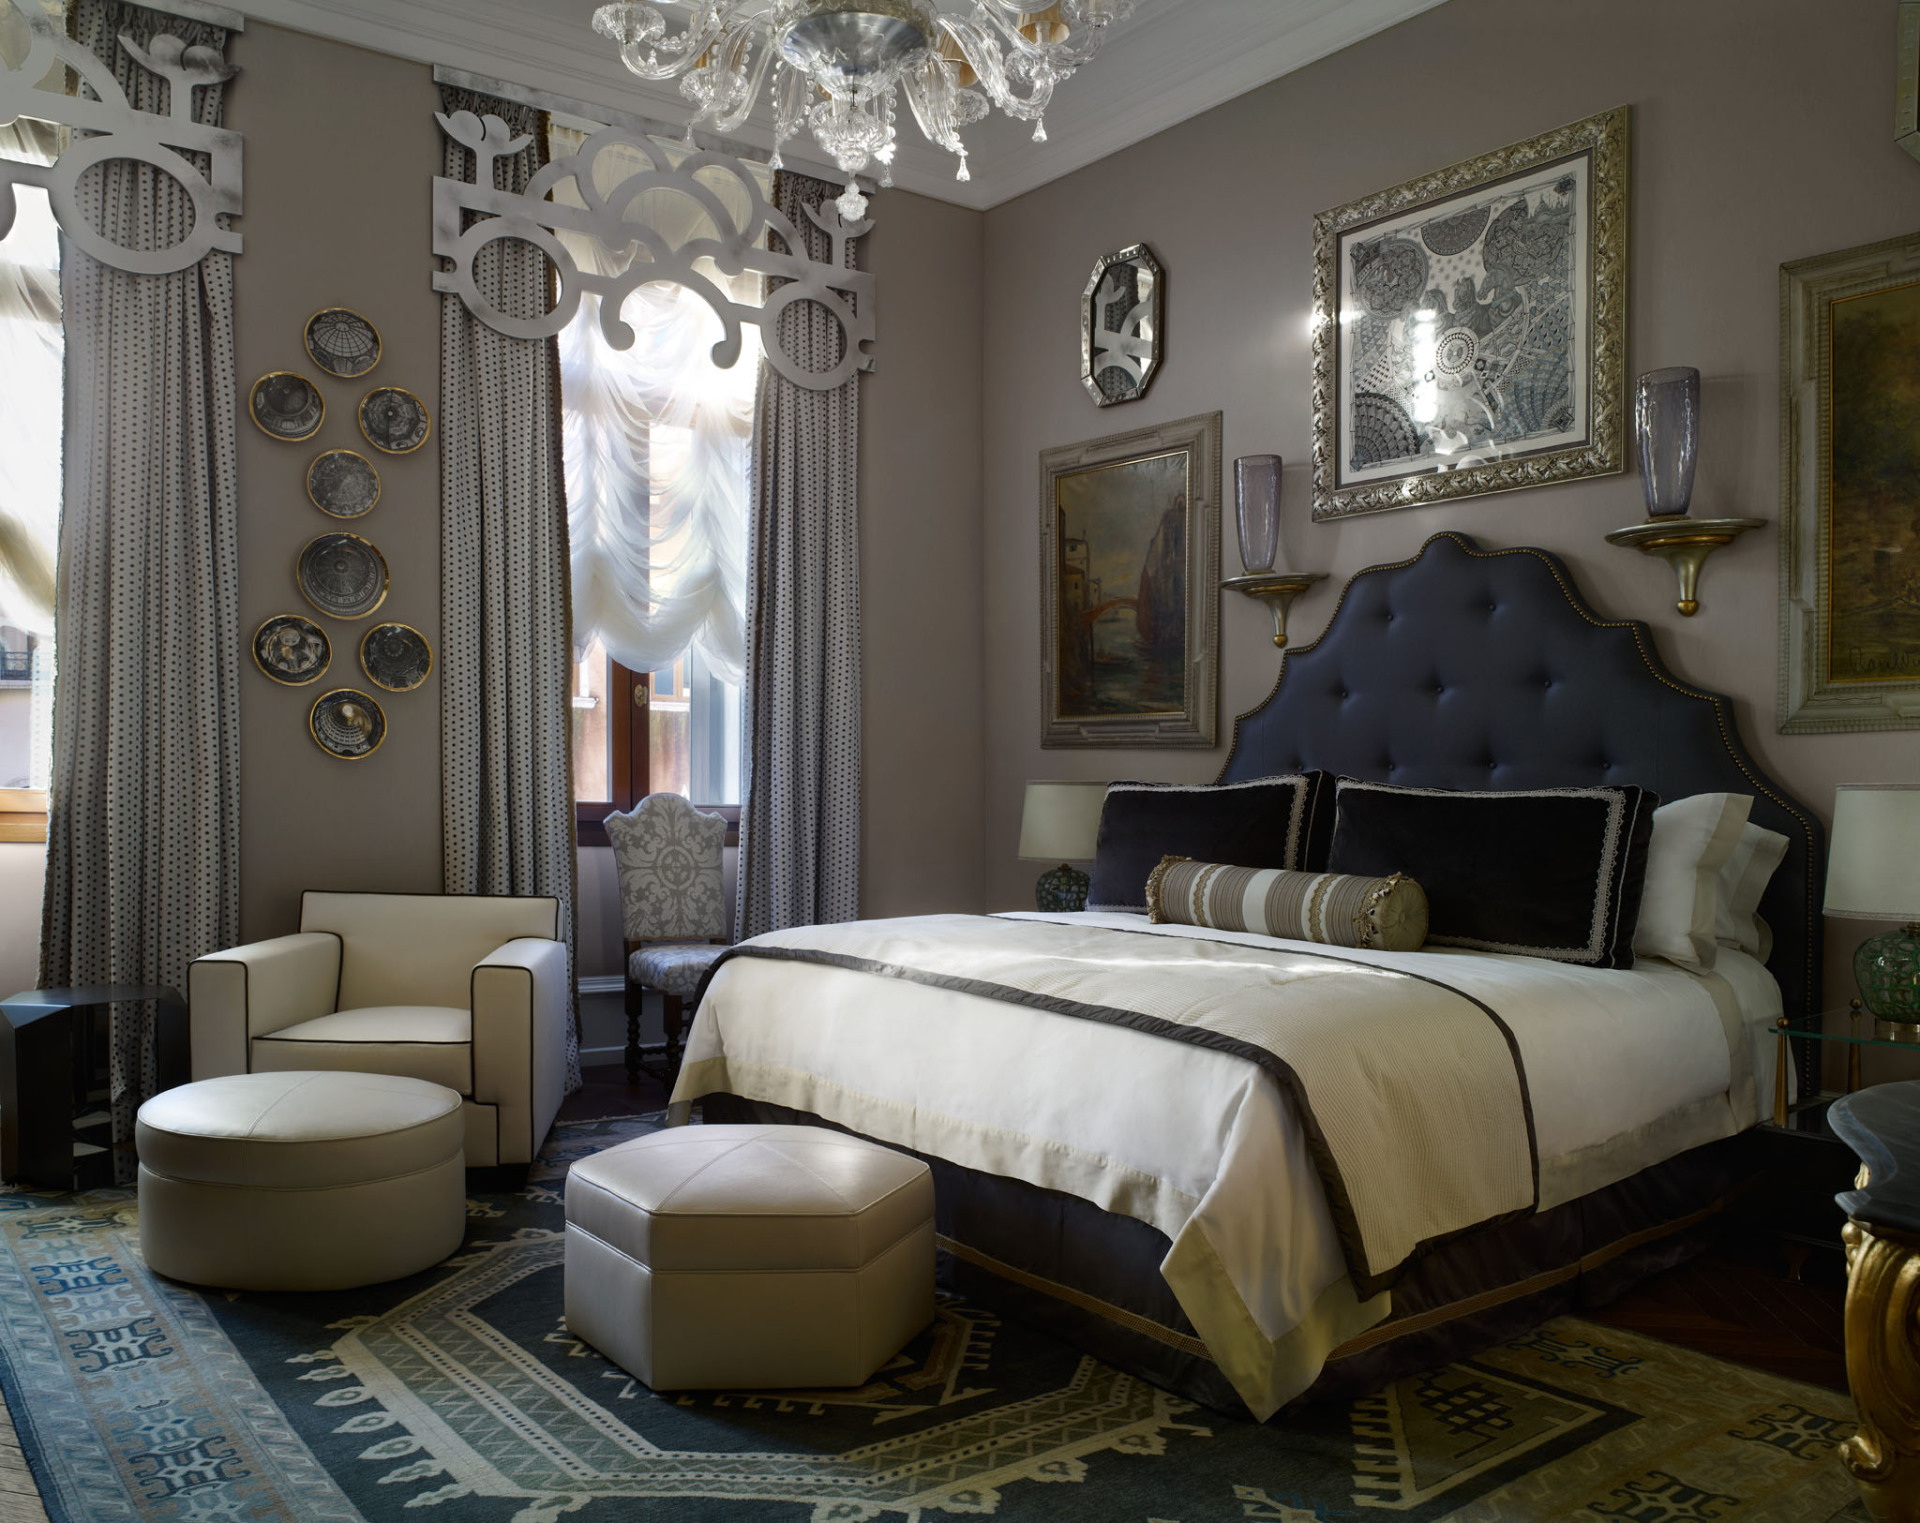 The Gritti Palace The Peggy Guggenheim Suite